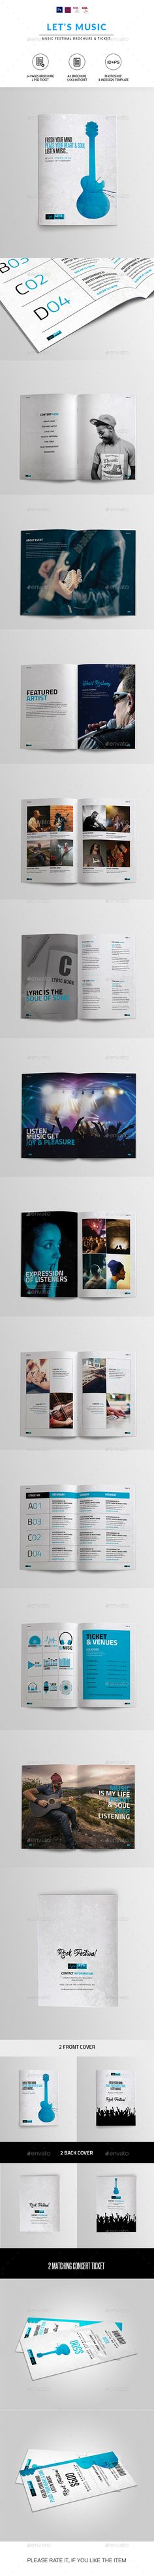 Music Festival Brochure | Indesign & Photoshop   PSD Template • Download ➝ https://graphicriver.net/item/music-festival-brochure-indesign-photoshop-template/14712679?ref=pxcr